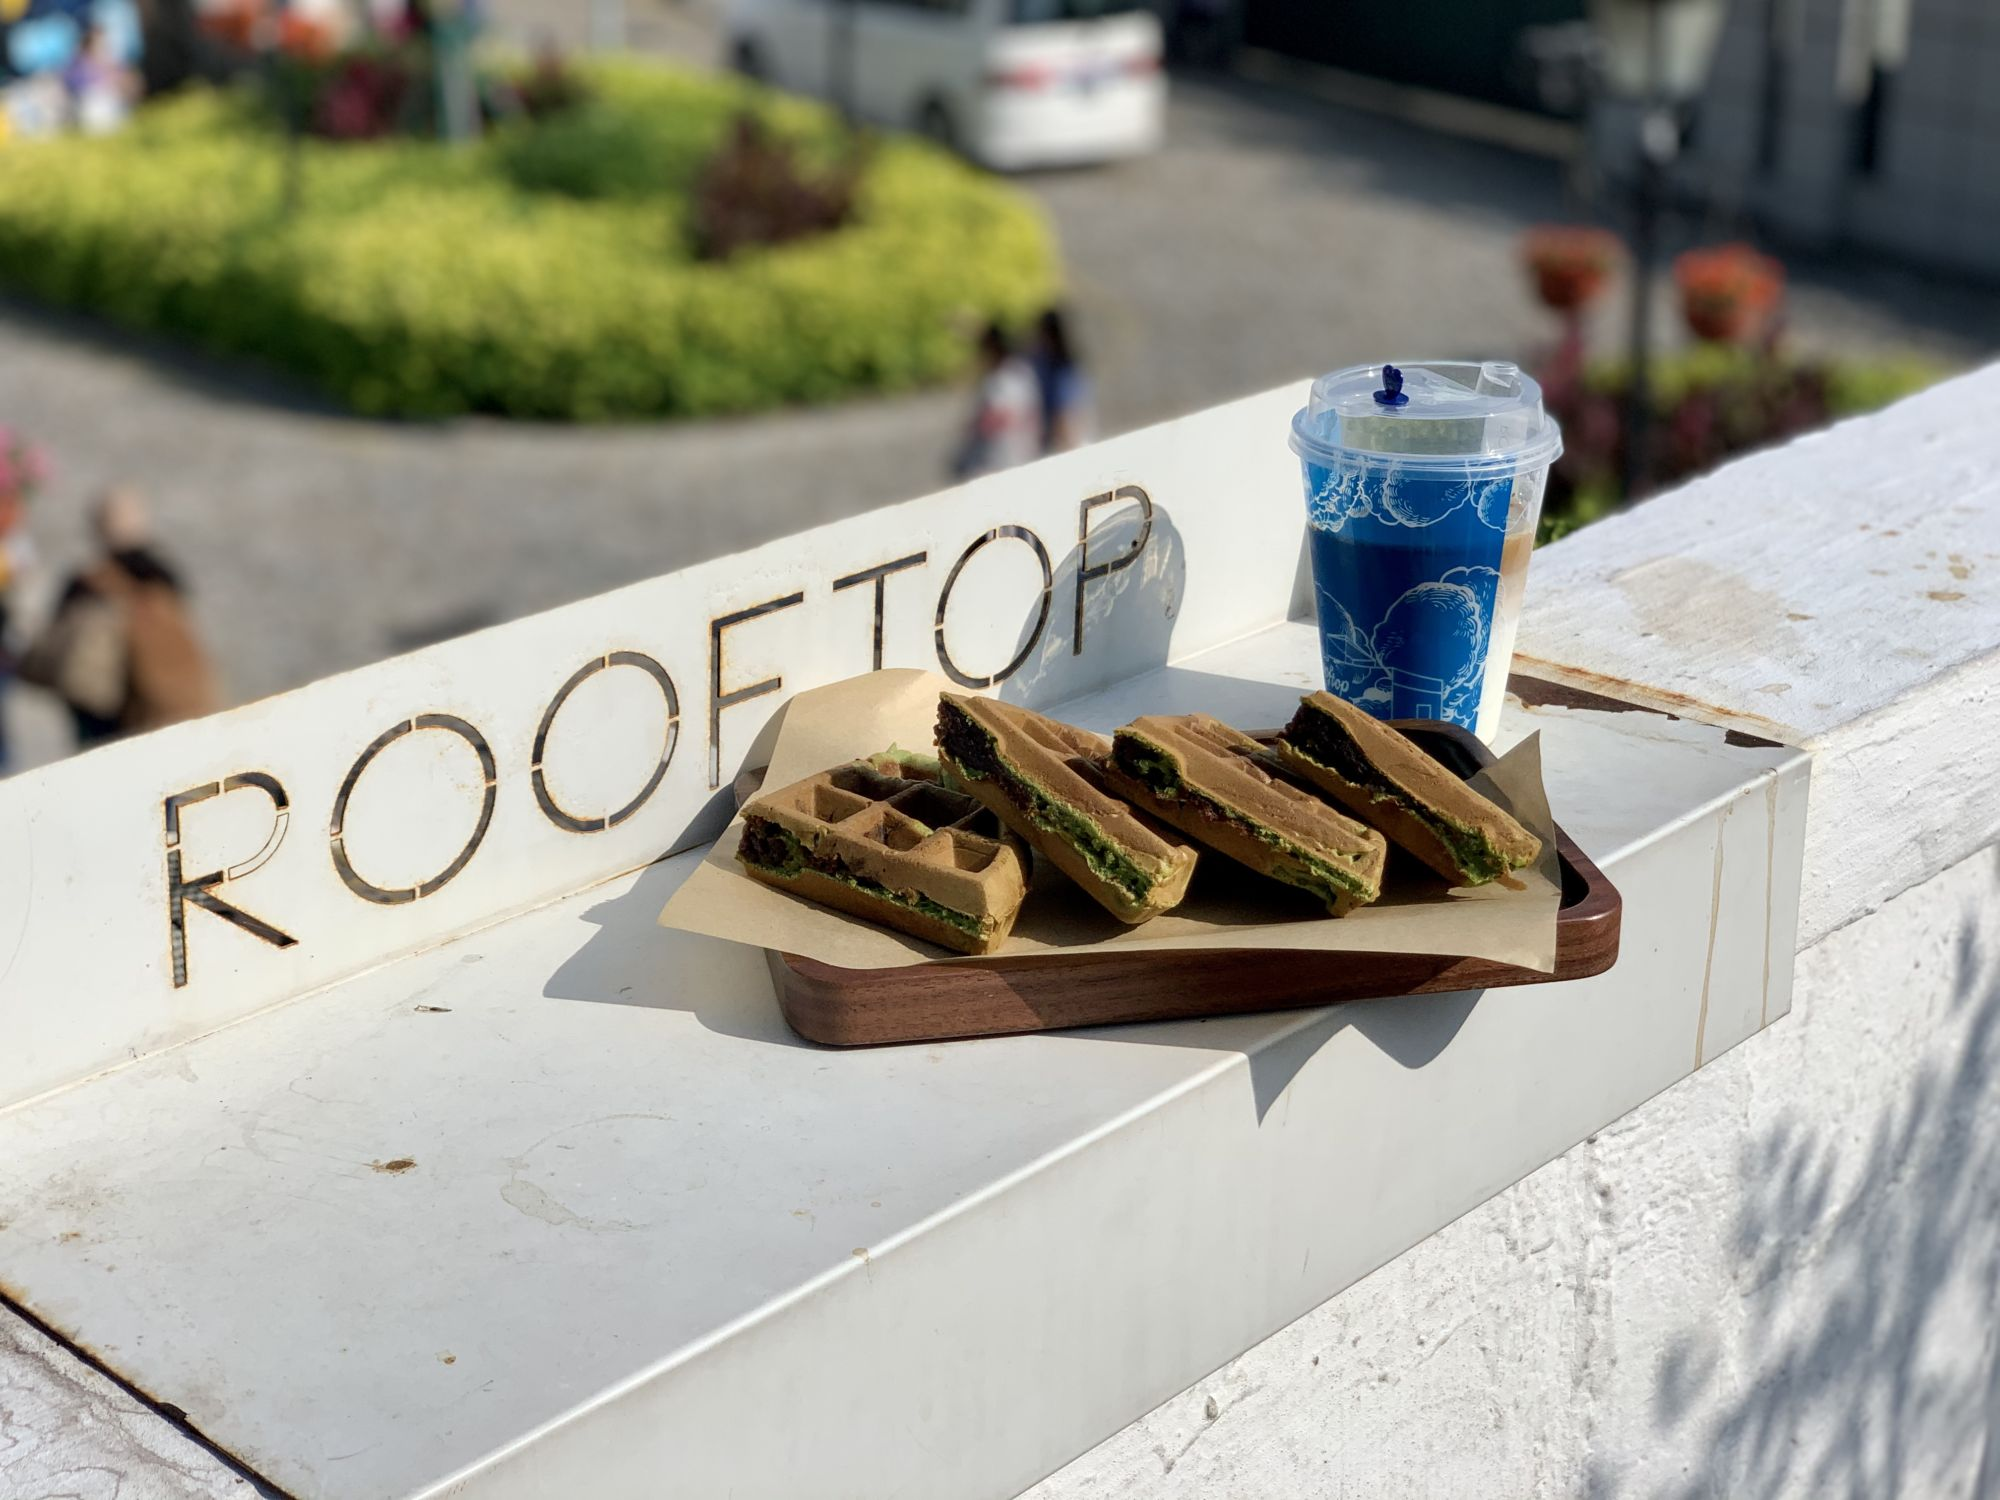 Waffles with Coffee at Rooftop Macau Exterior Macau Lifestyle